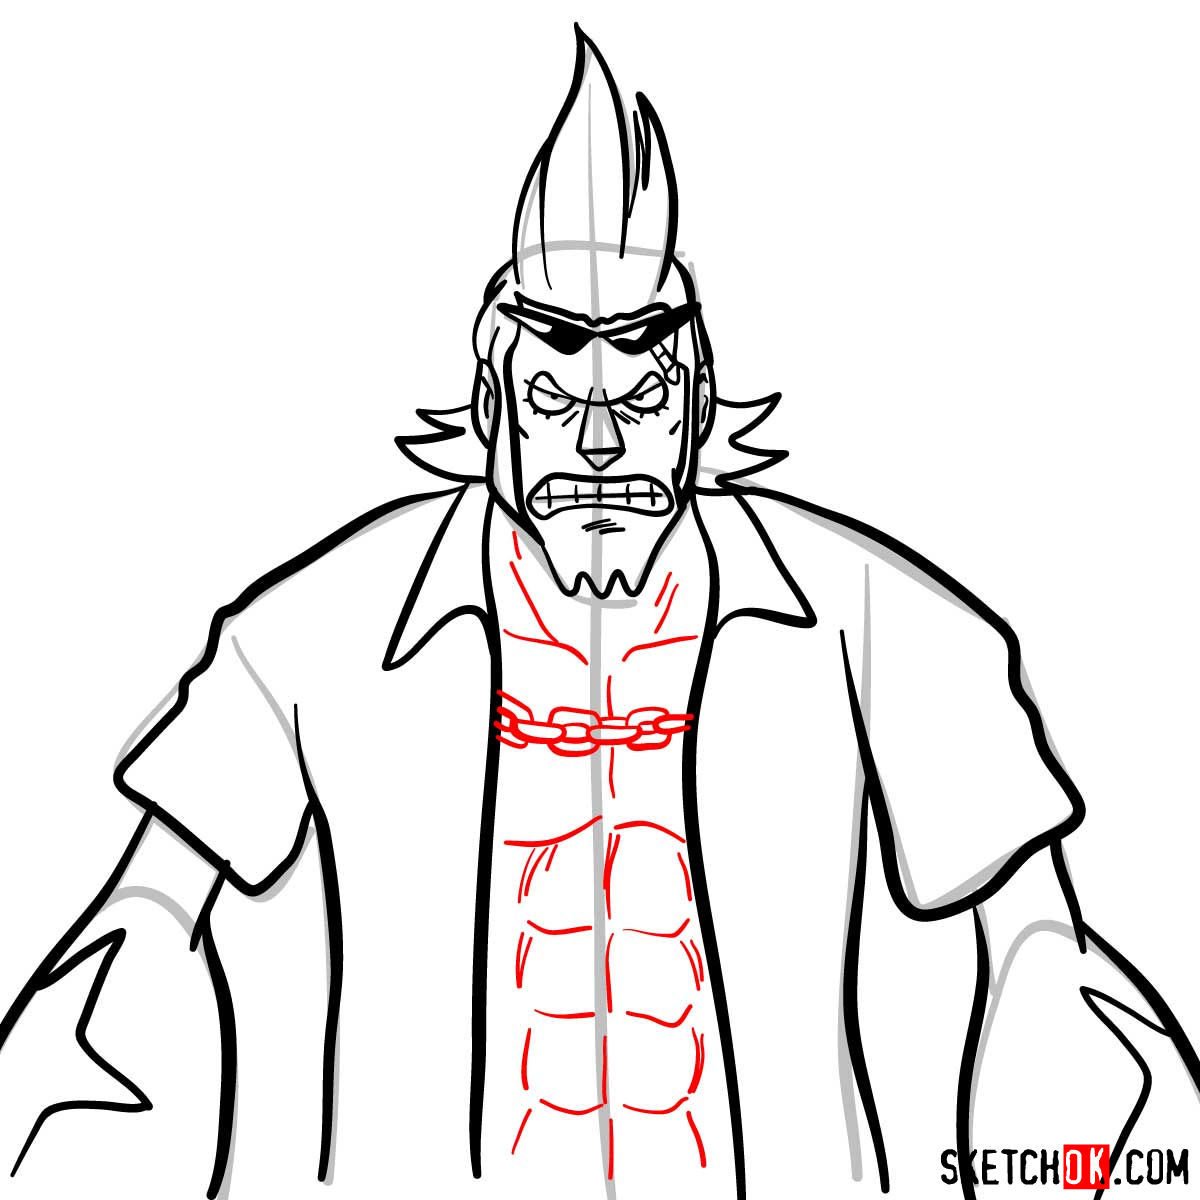 How to draw Franky from One Piece anime - step 10